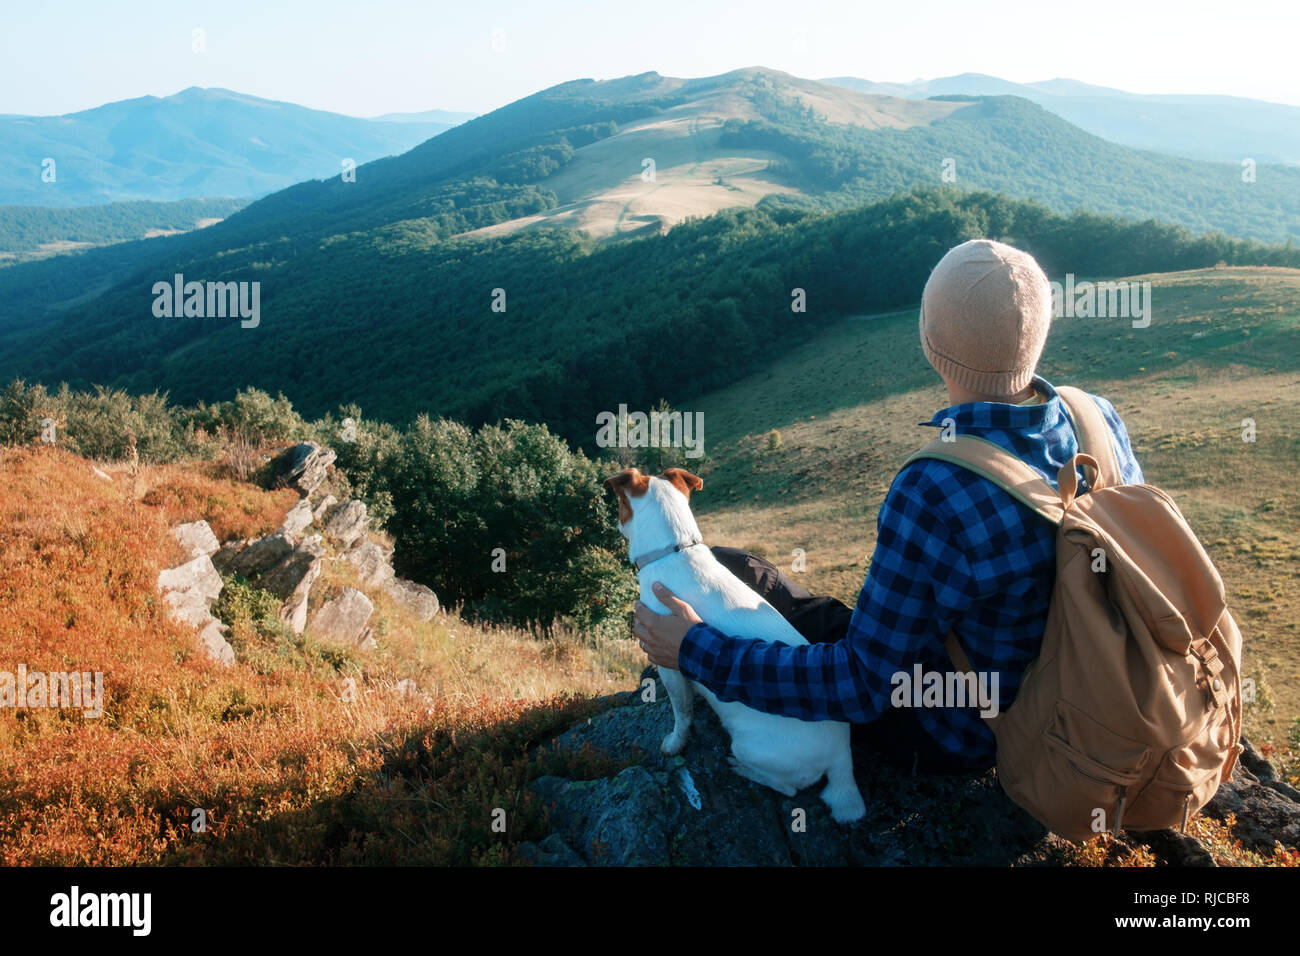 Alone tourist sitting on the edge of the cliff with dog against the backdrop of an incredible mountain landscape. Sunny day and blue sky - Stock Image